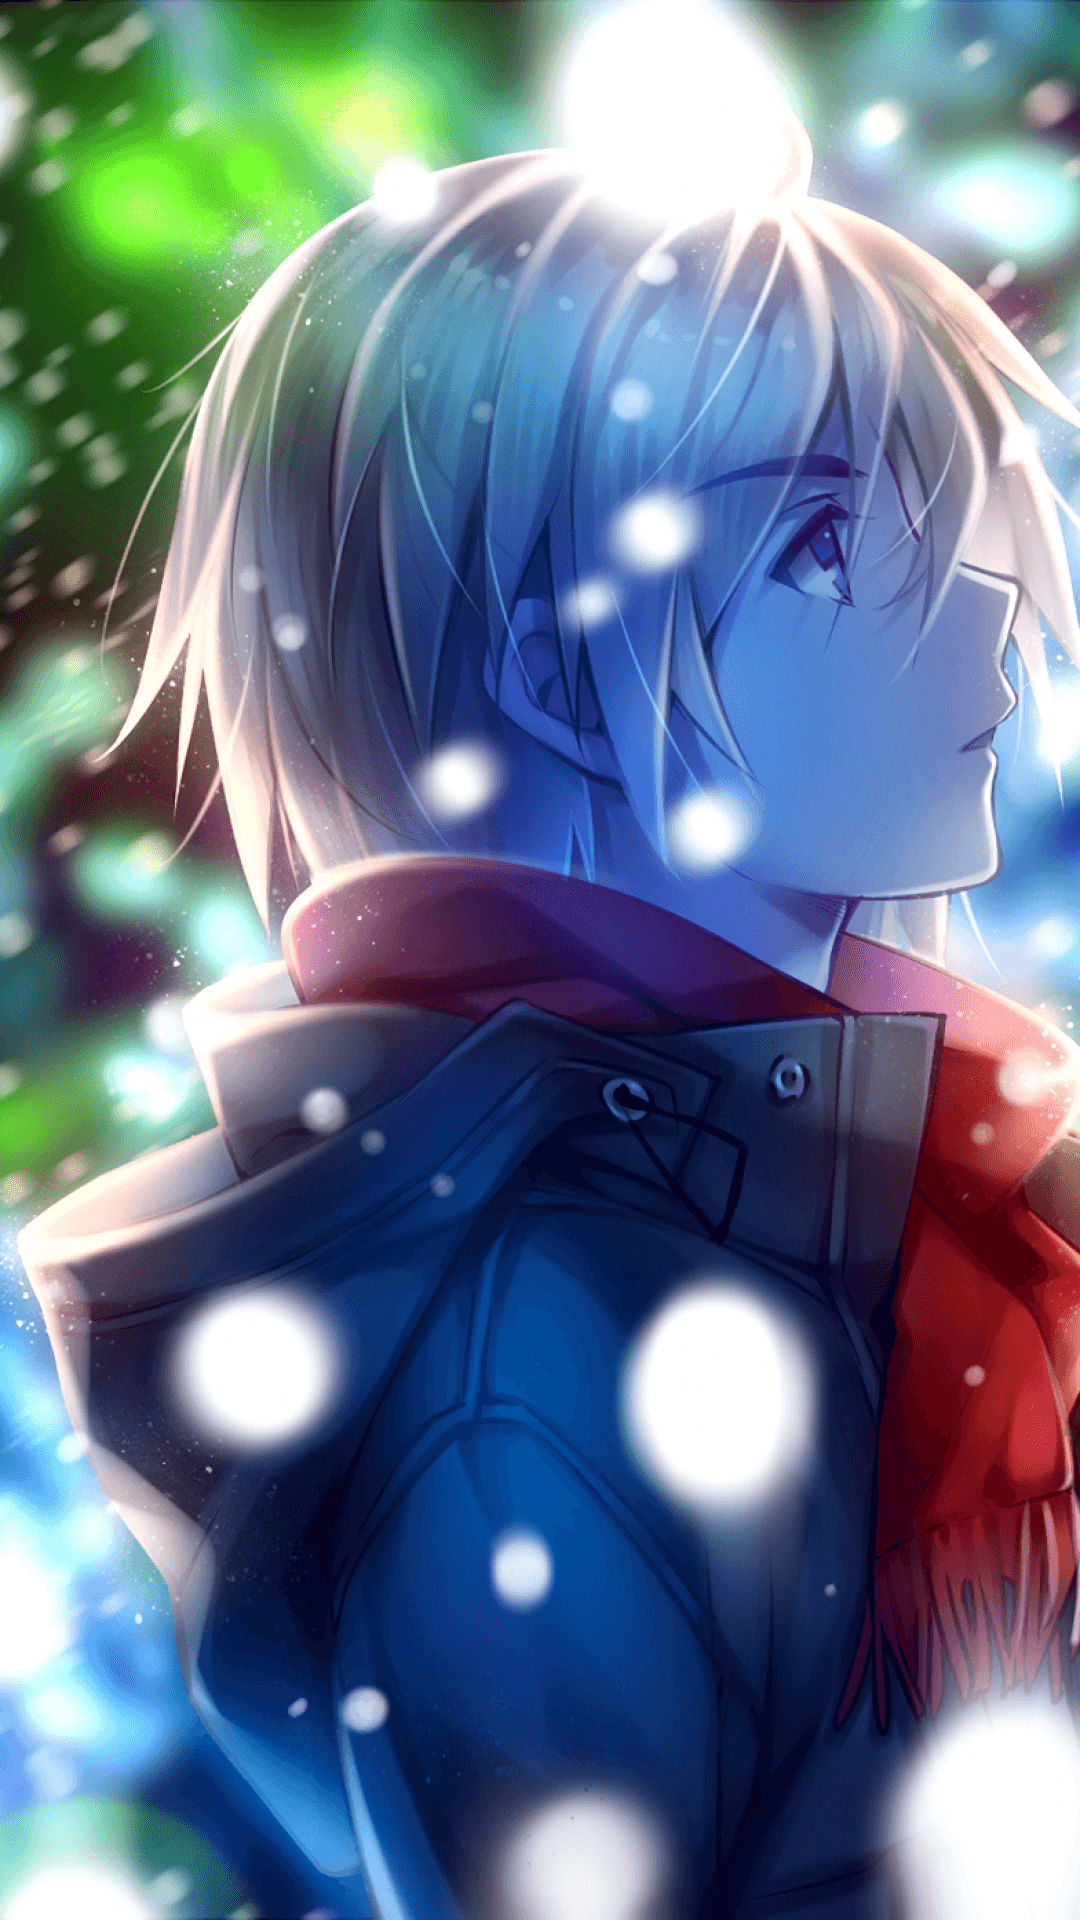 Cute Anime Boys Wallpapers Wallpaper Cave